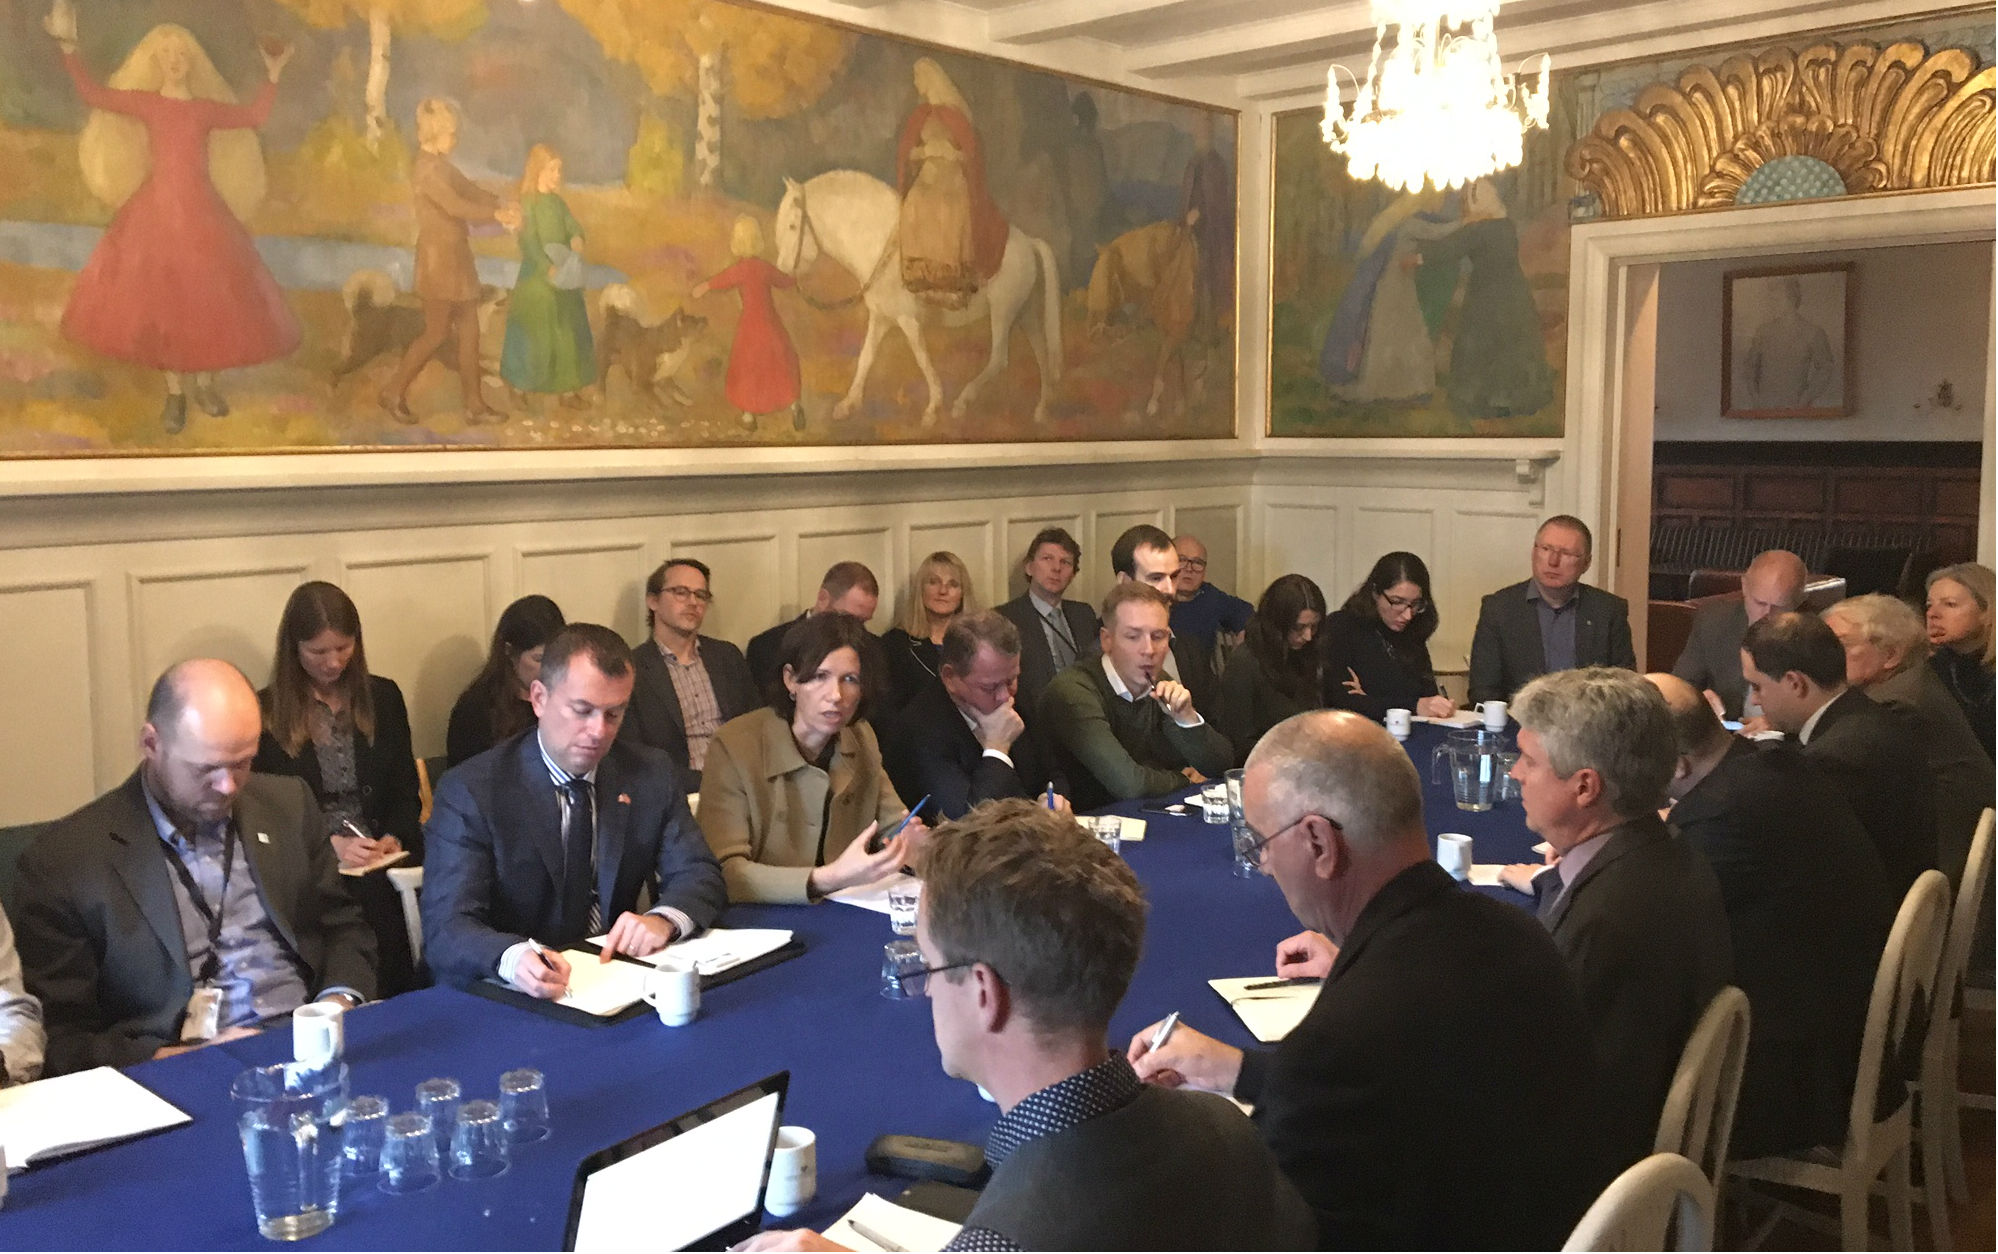 Roundtable discussion on Arctic issues at FNI. Photo: Karoline Flåm